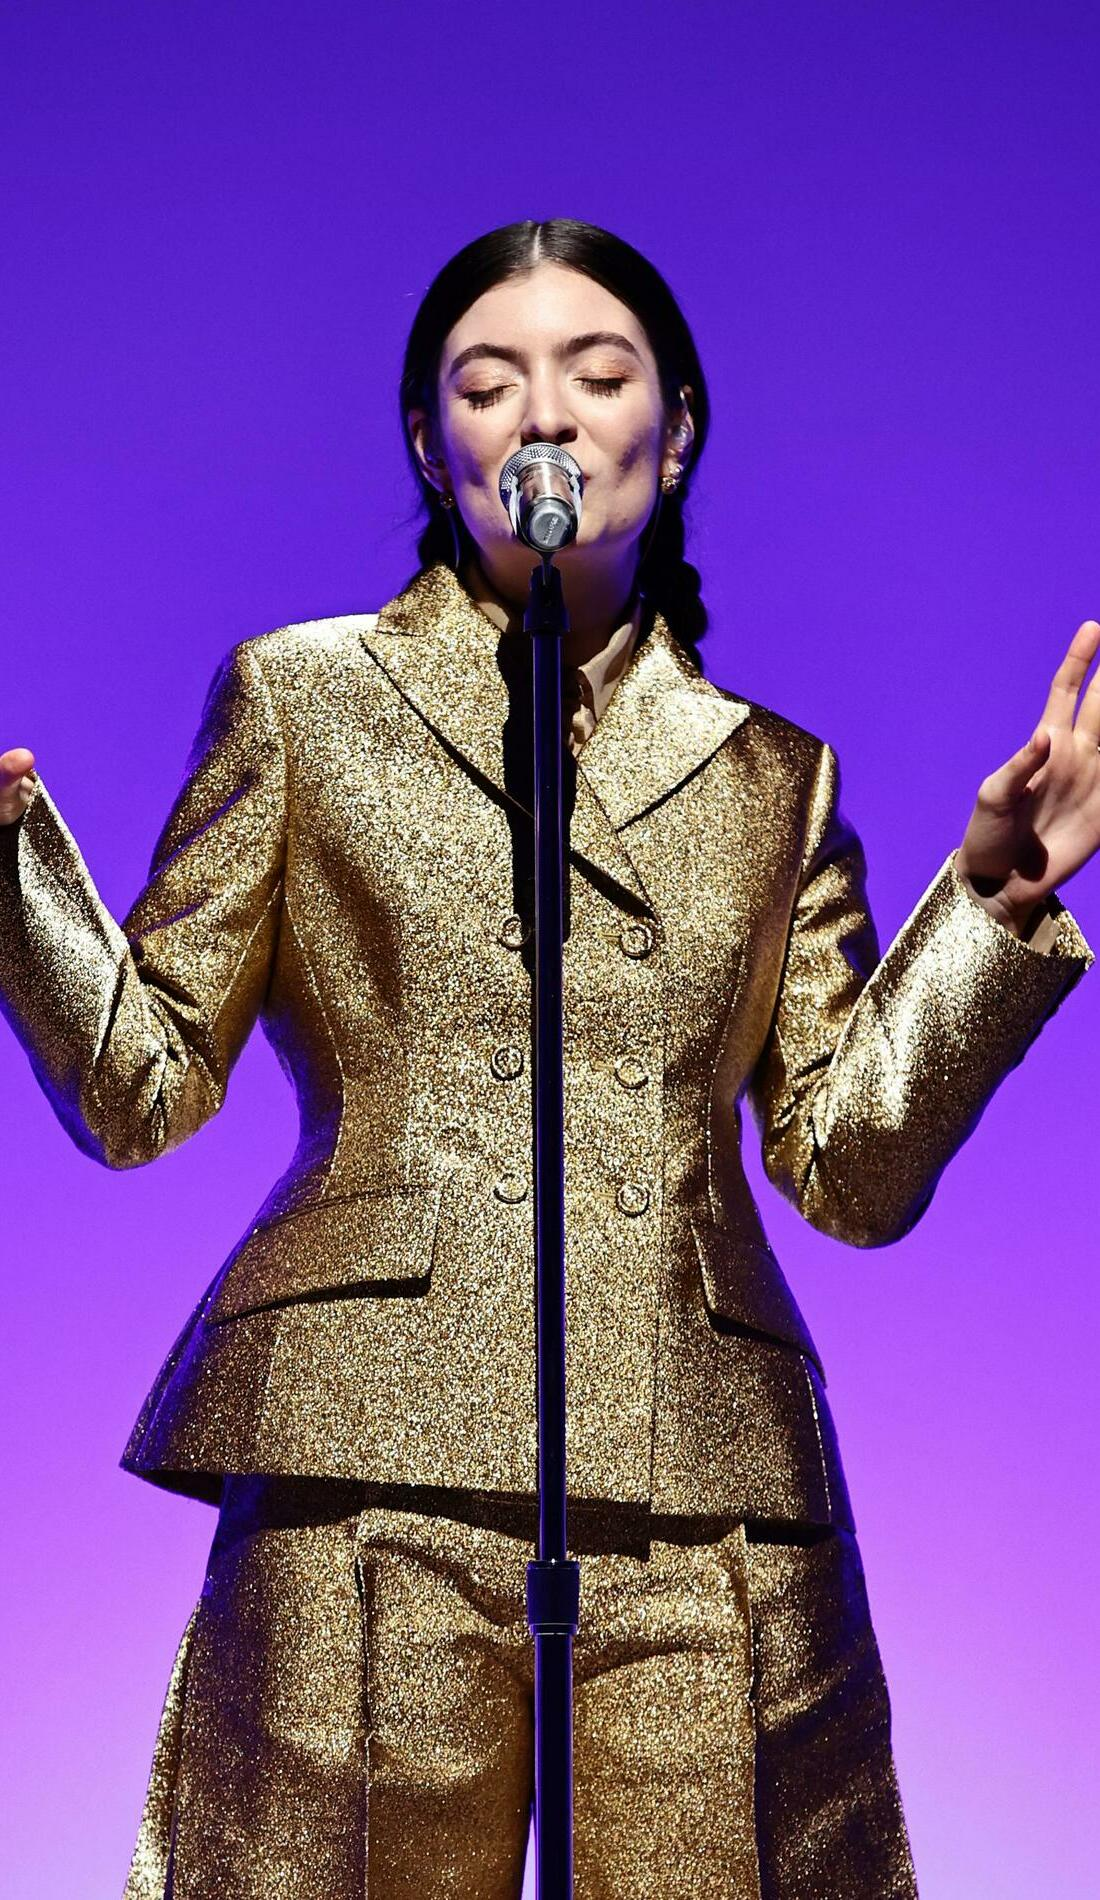 A Lorde live event